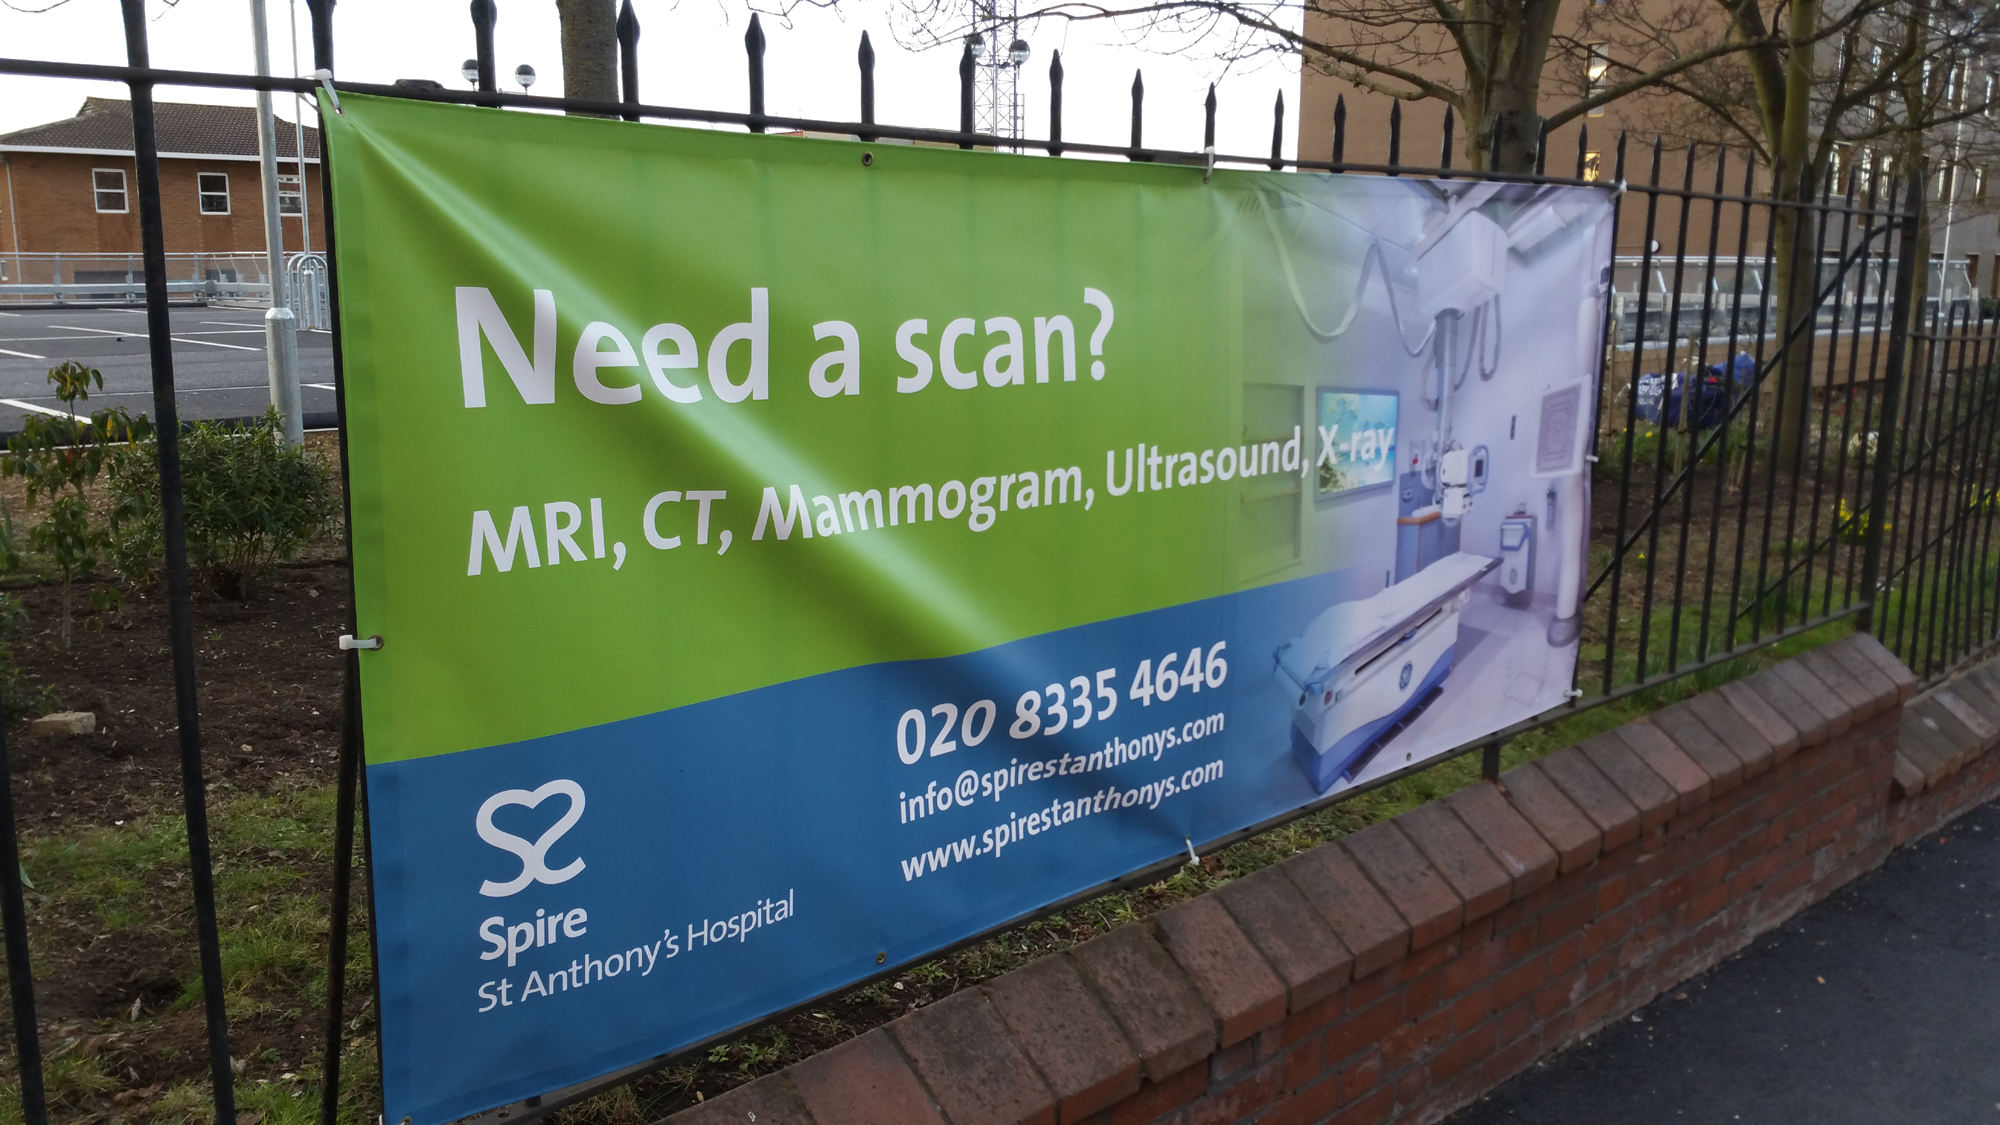 Spire St Anthony's Hospital - Need a scan - MRI CT Mammogram Ultrasound